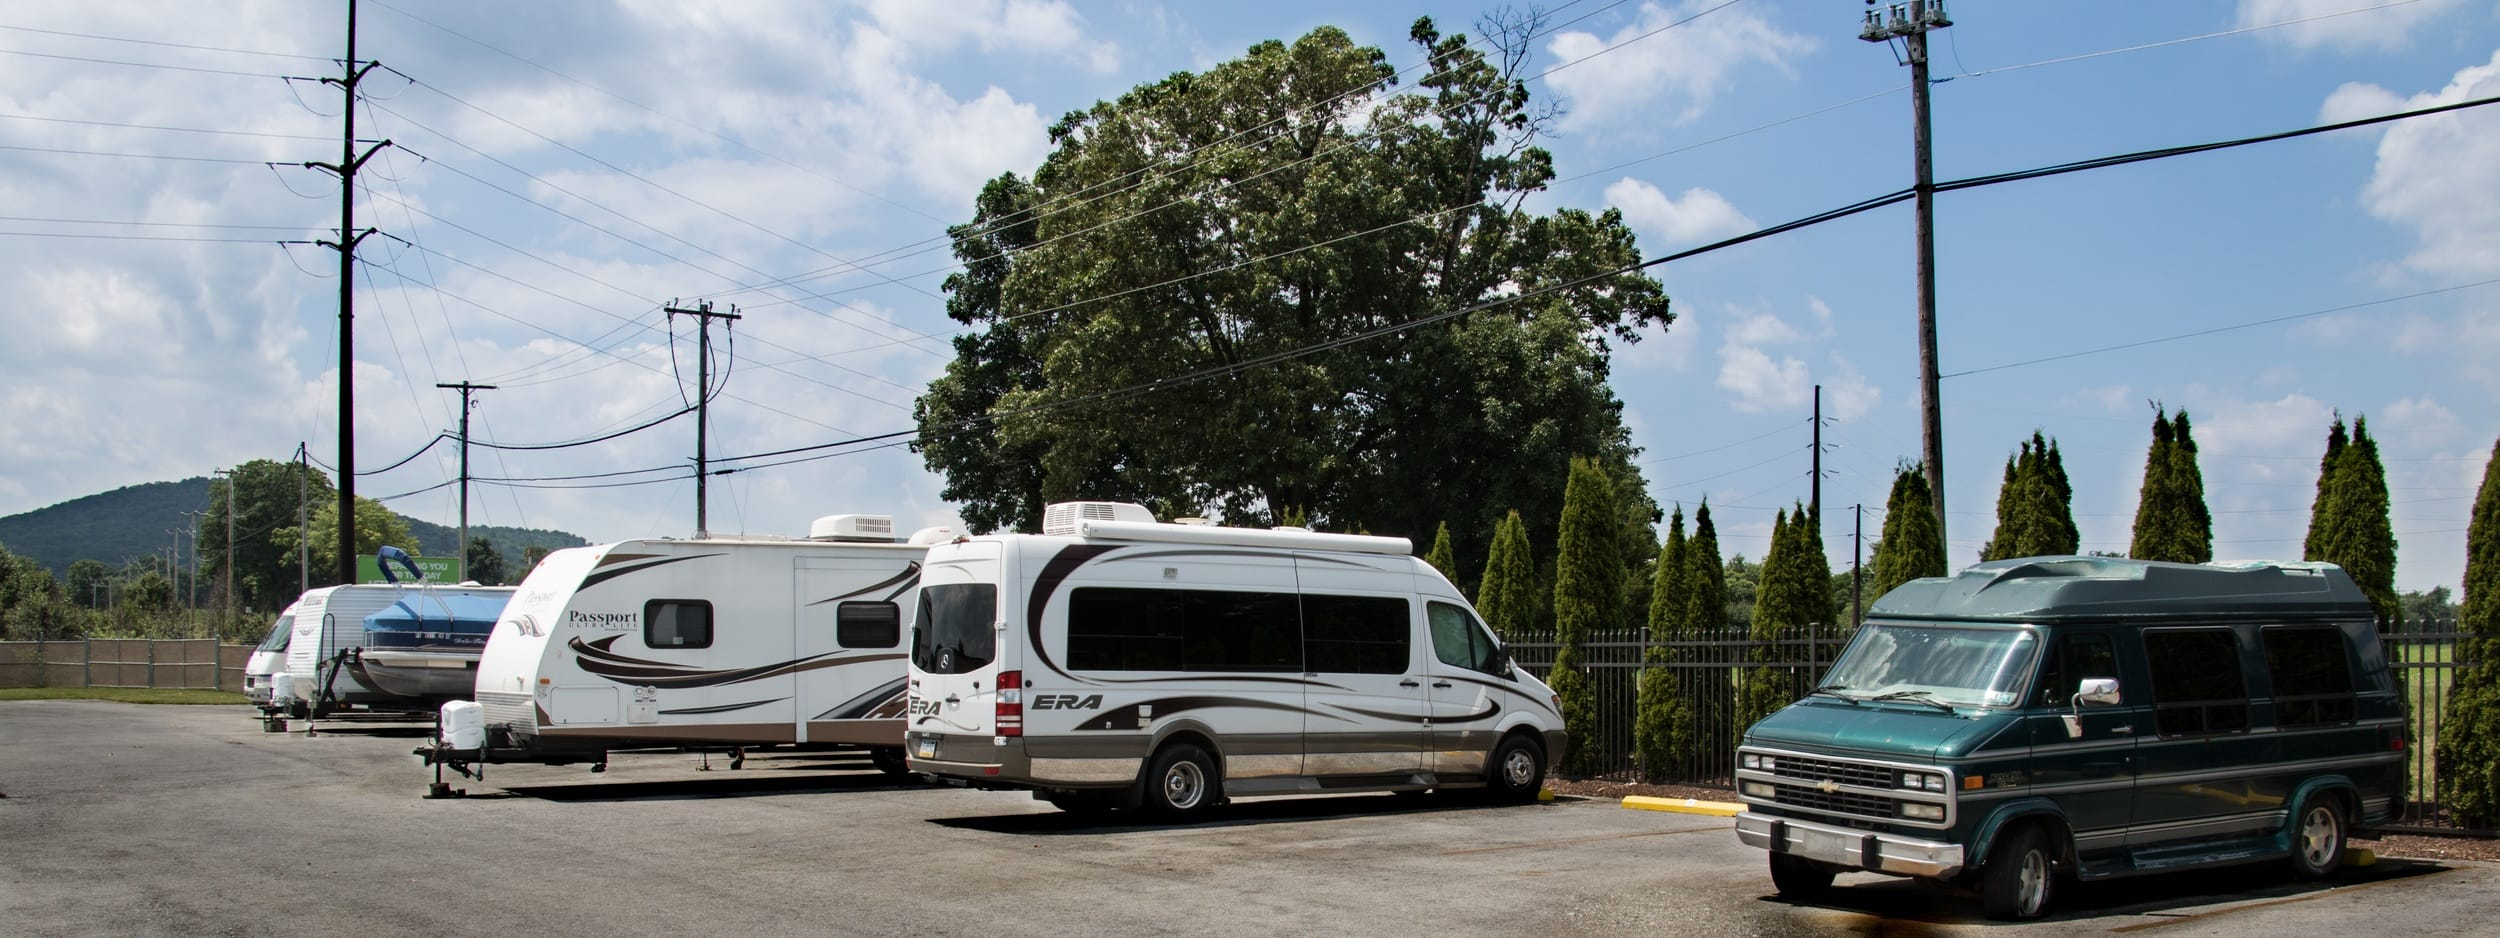 RV & Boat Storage in Sinking Spring